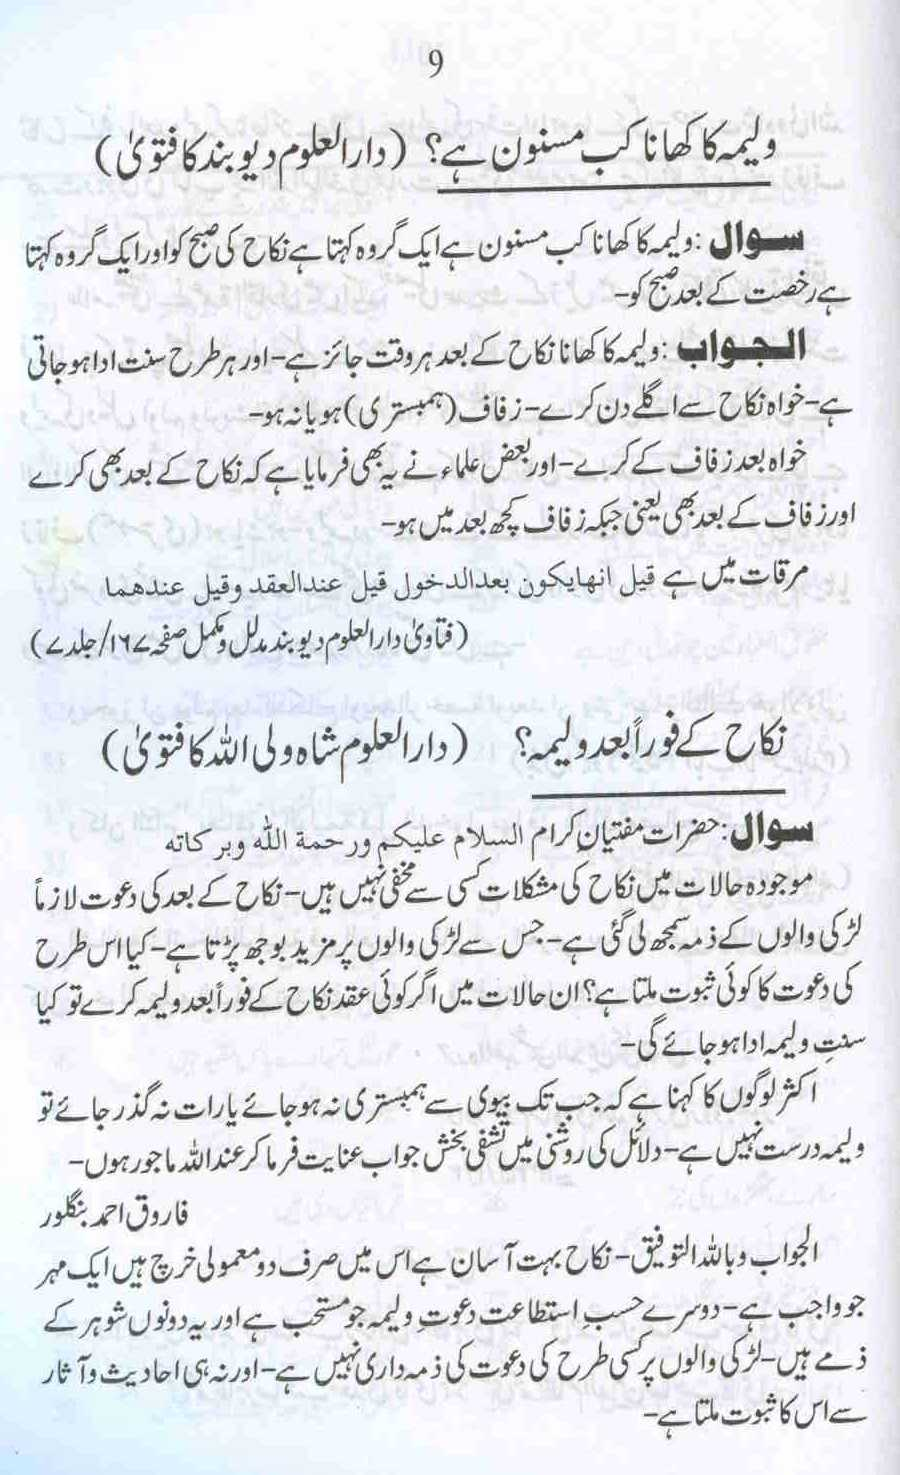 Date of Fatwa: 15/ March/ 2001. Date of Reply: 15/ March/ 2001.